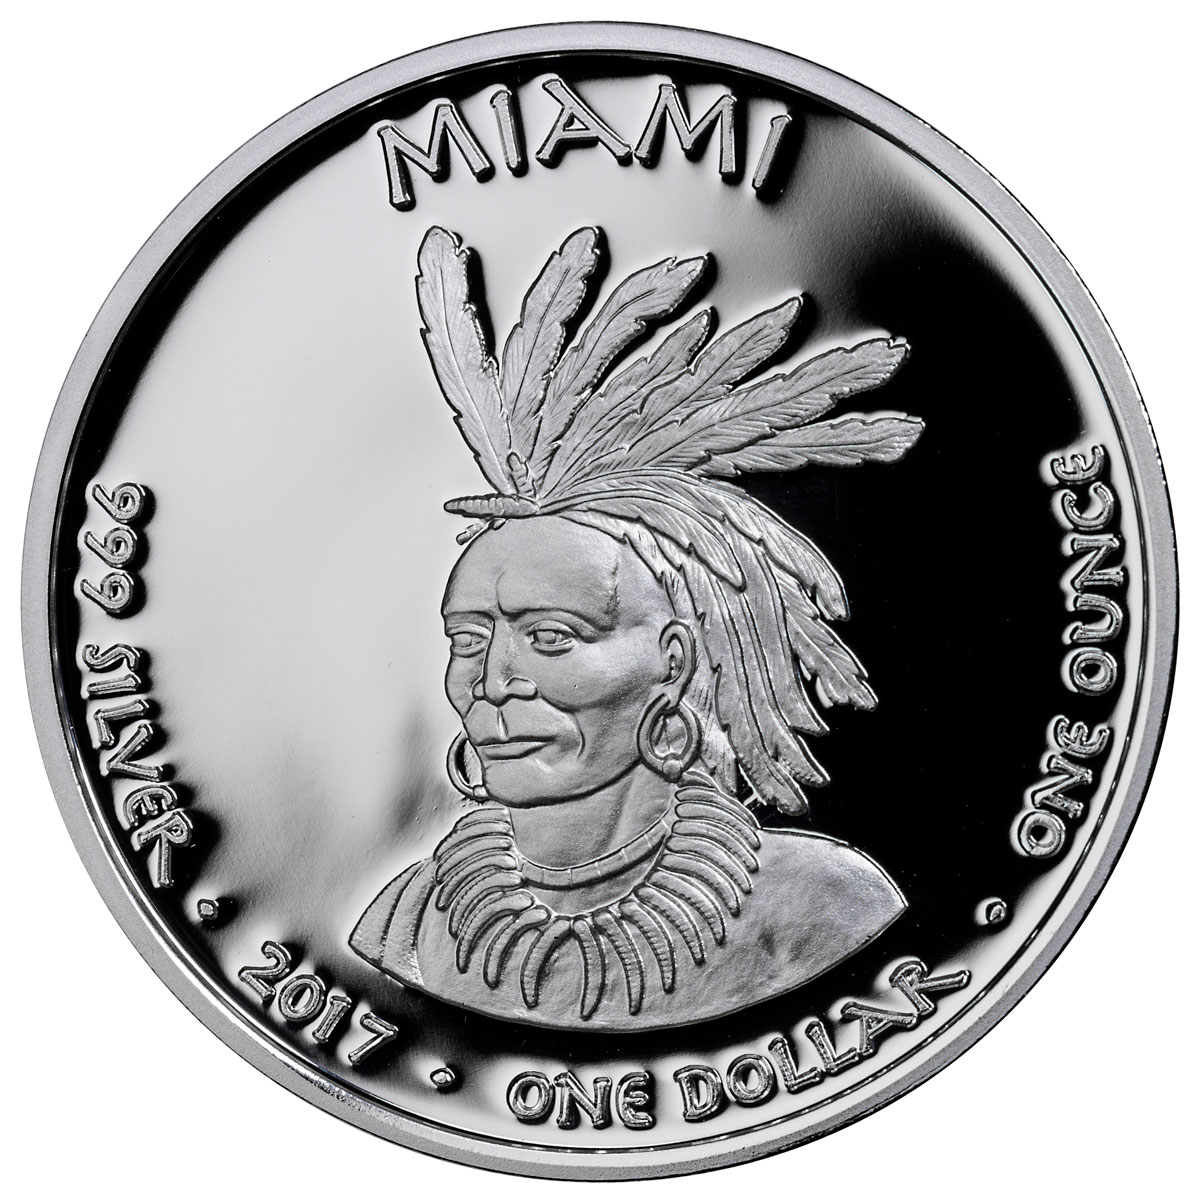 2017 Native American Silver Dollar - Indiana Miami - Mink 1 oz Silver Proof Coin GEM Proof Original Mint Capsule